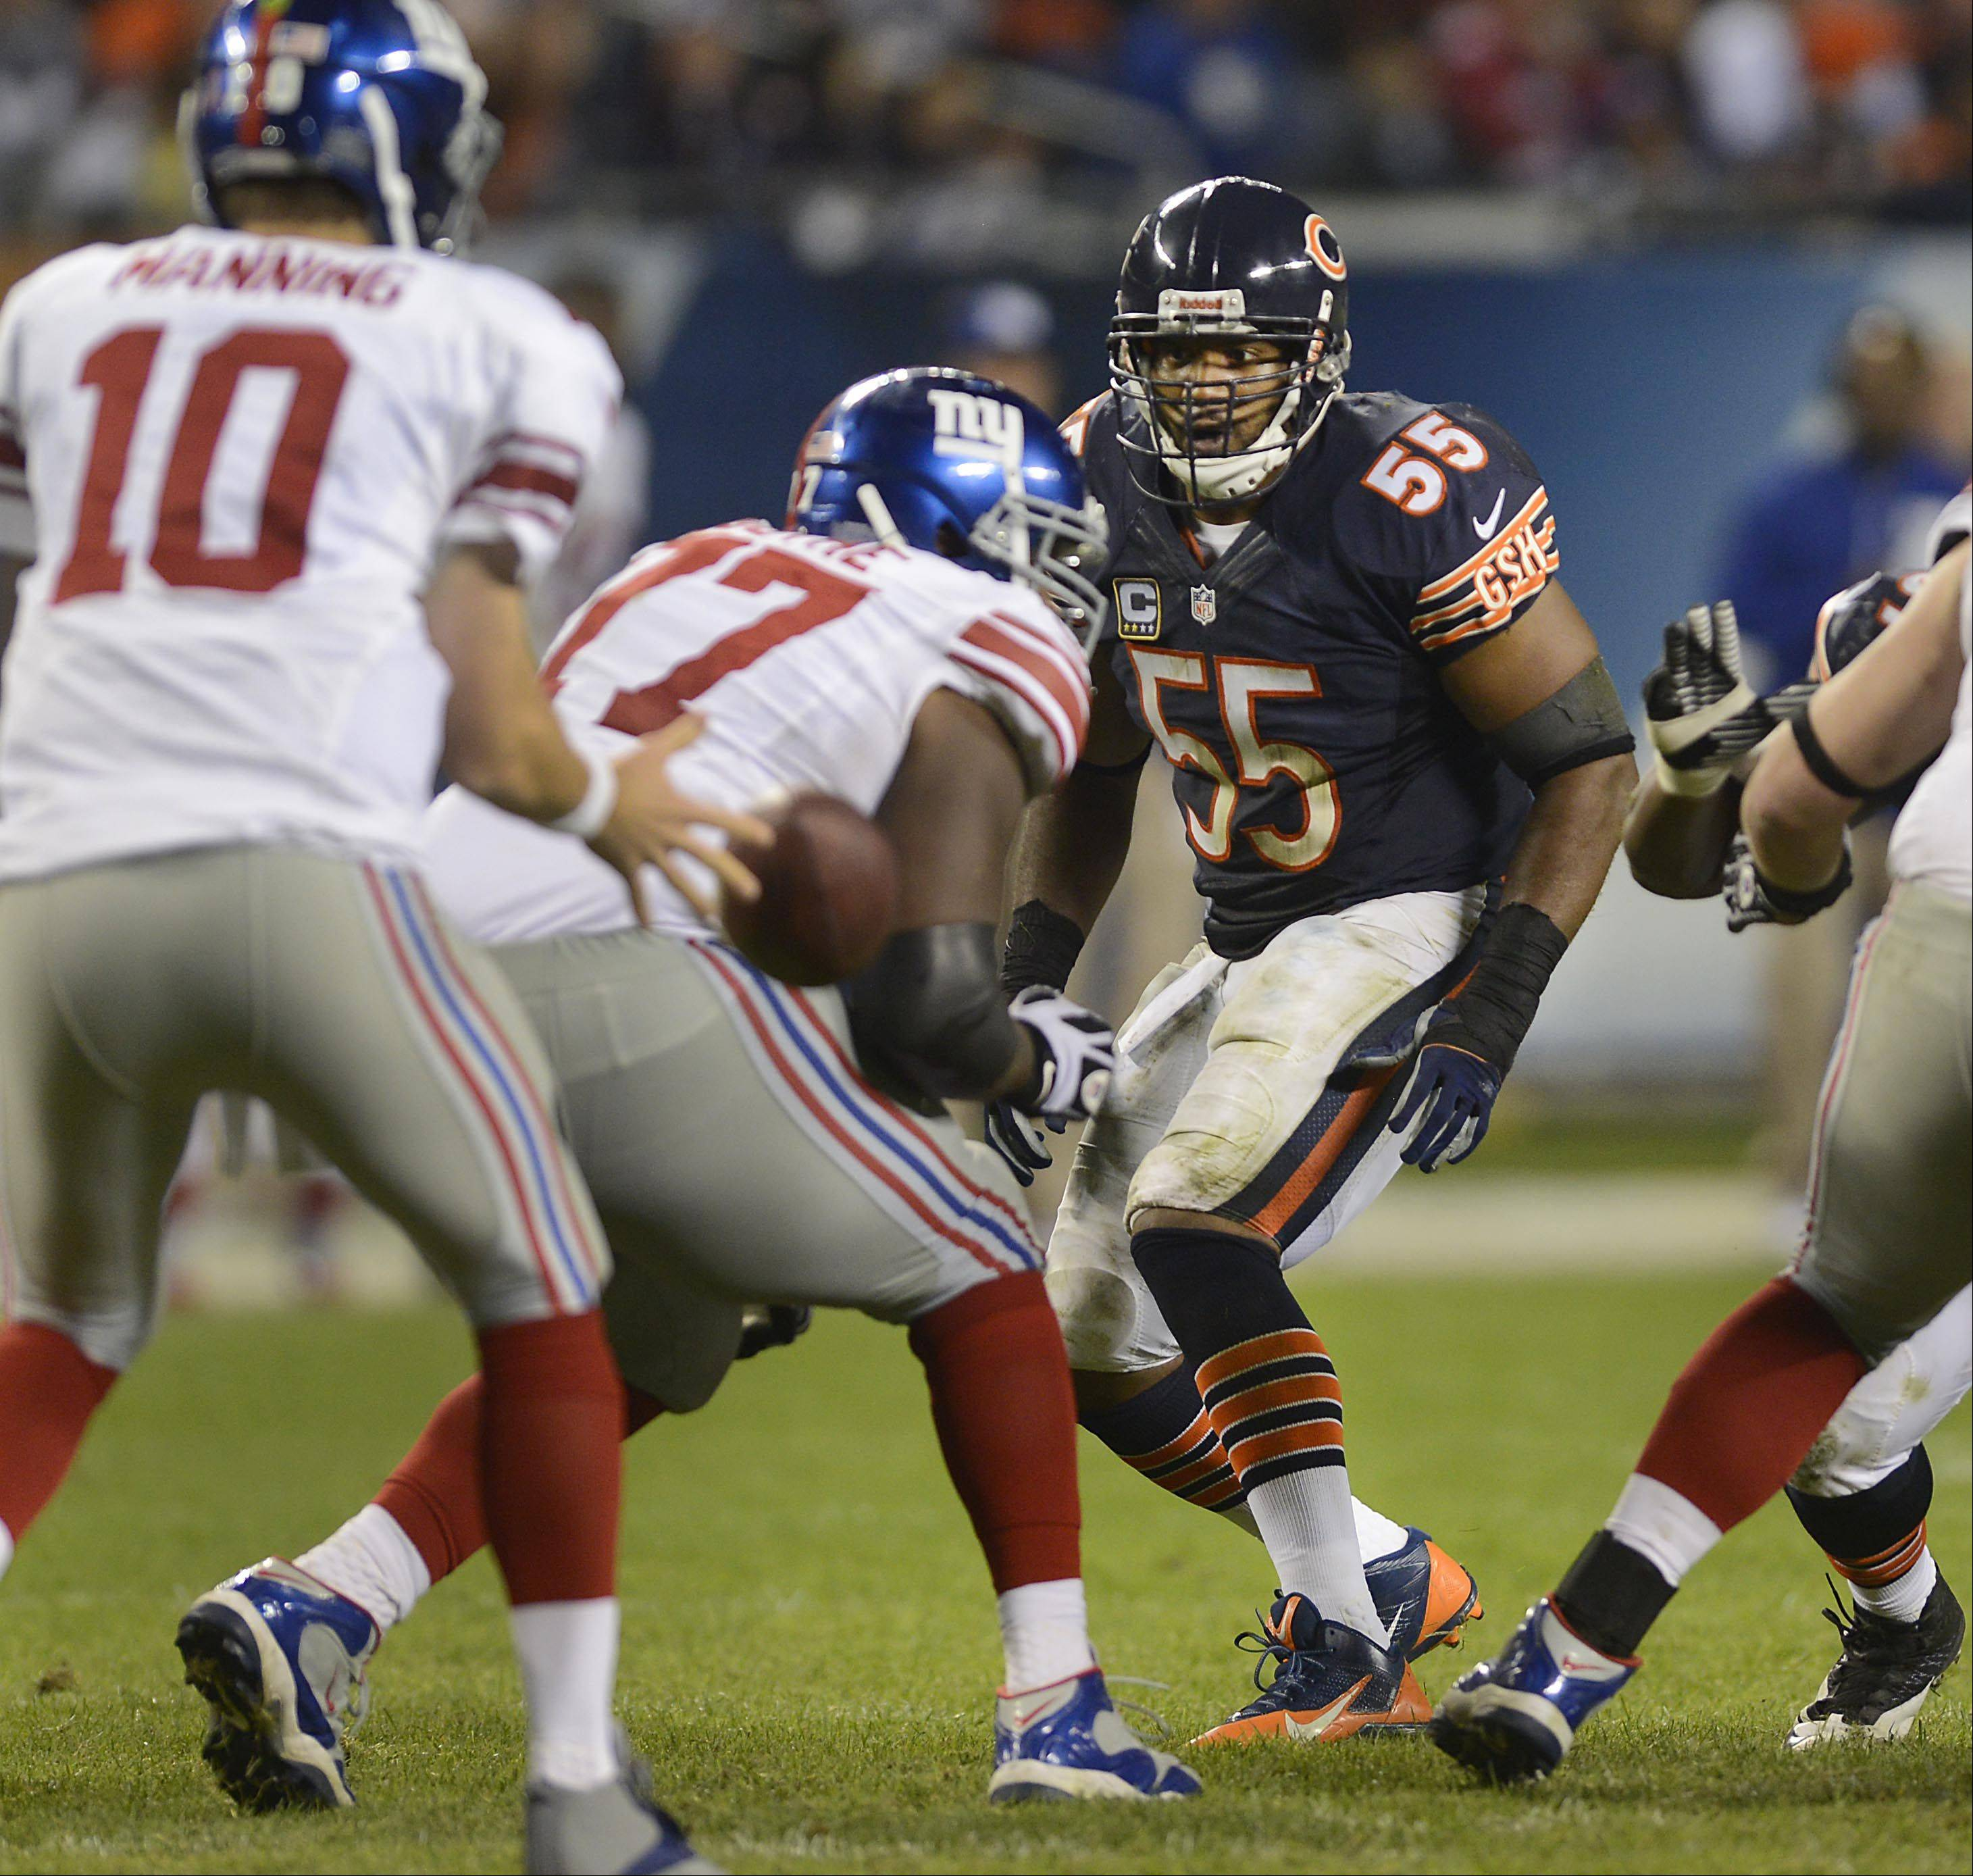 Bears outside linebacker Lance Briggs reacts as the ball is hiked to New York Giants quarterback Eli Manning Thursday night at Soldier Field in Chicago.